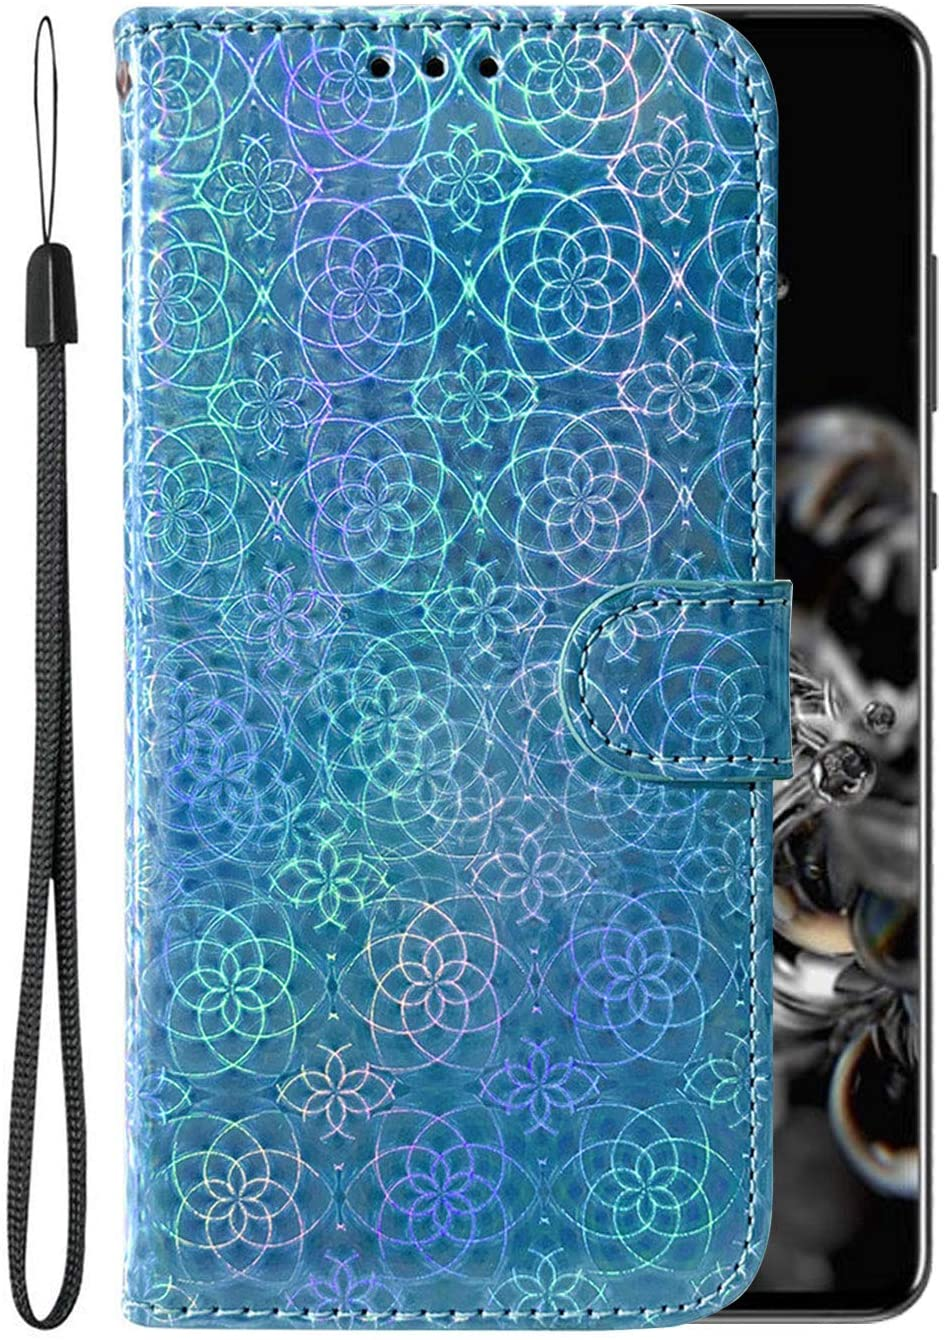 S20 Ultra Case Compatible with Samsung Galaxy S20ultra Cases PU Leather Wallet Card Holder Cover Glaxay S 20Ultra Bling Magnetic Kickstand Wrist Strap Protective Bumper 6.9 inch (Blue)